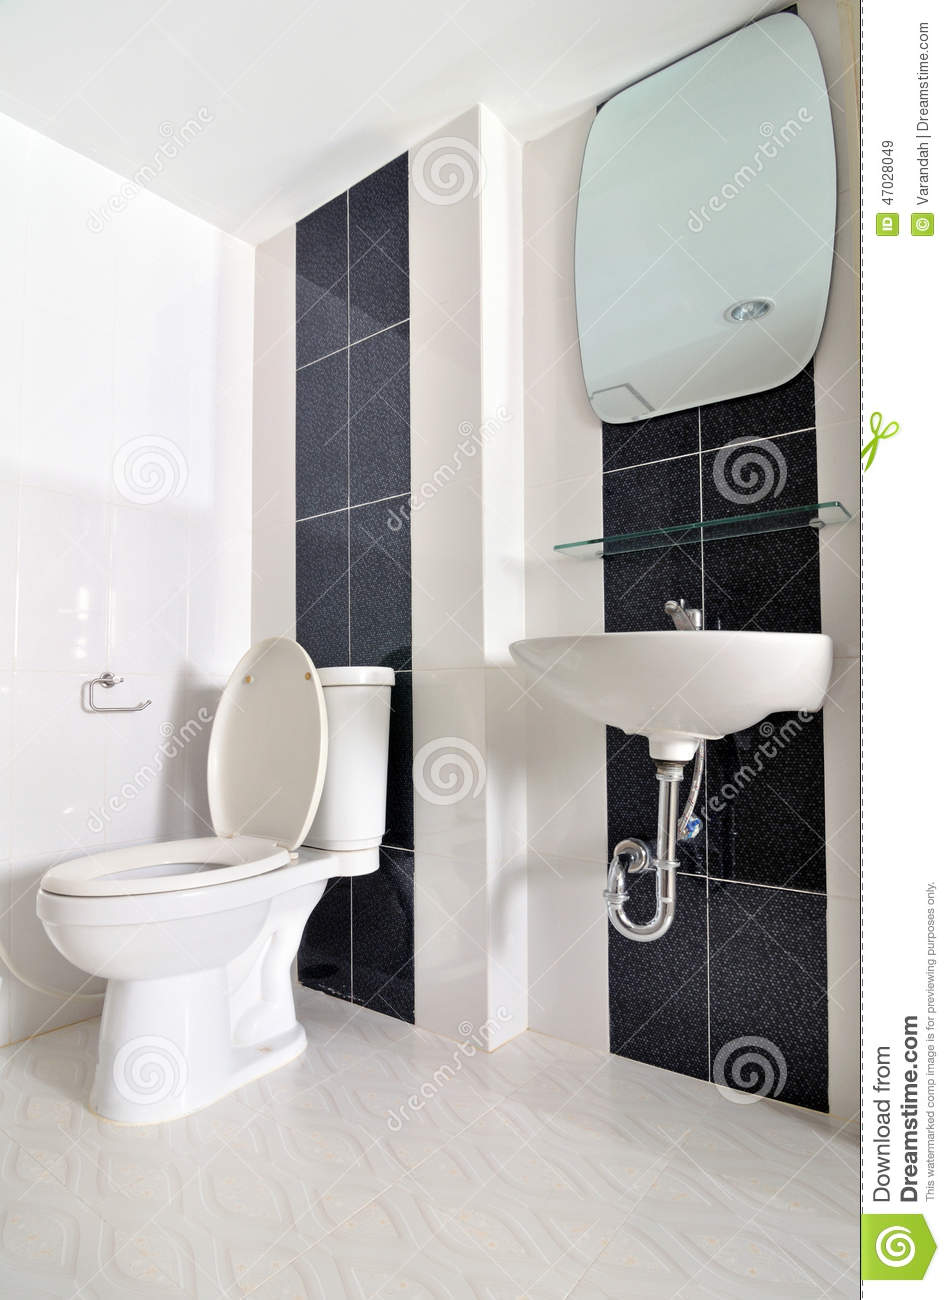 Small simple bathroom with sink and toilet stock image for Compact toilet for small bathrooms